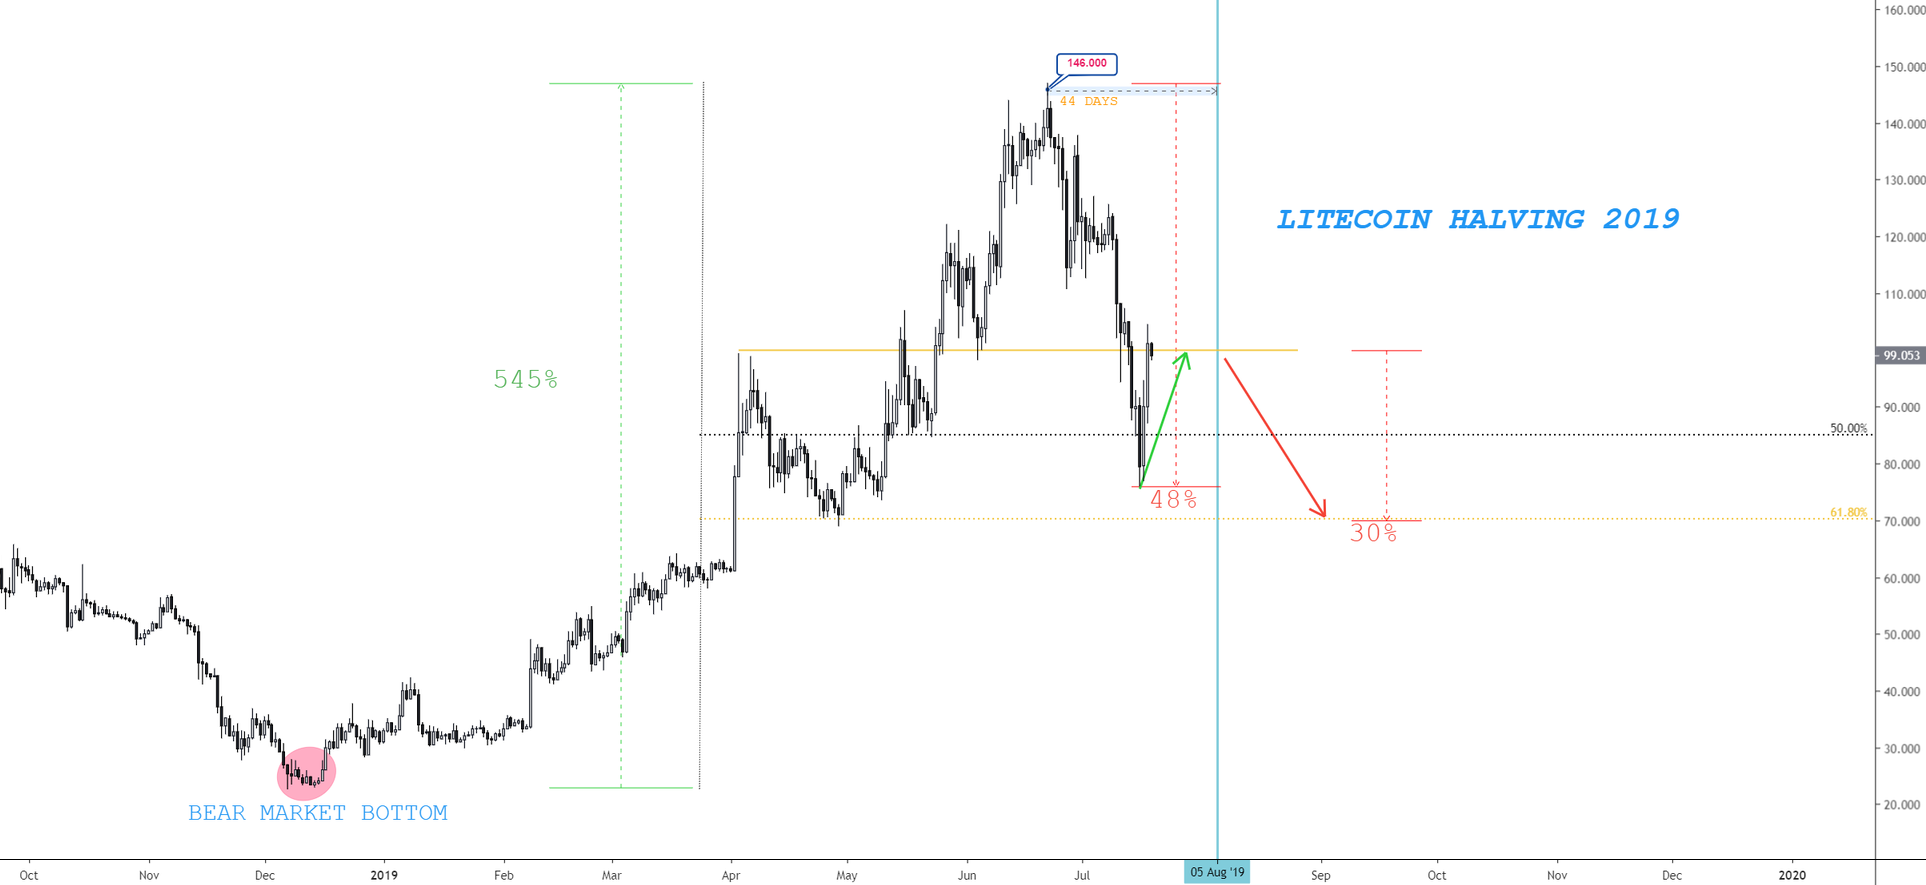 Litecoin halving and price prediction